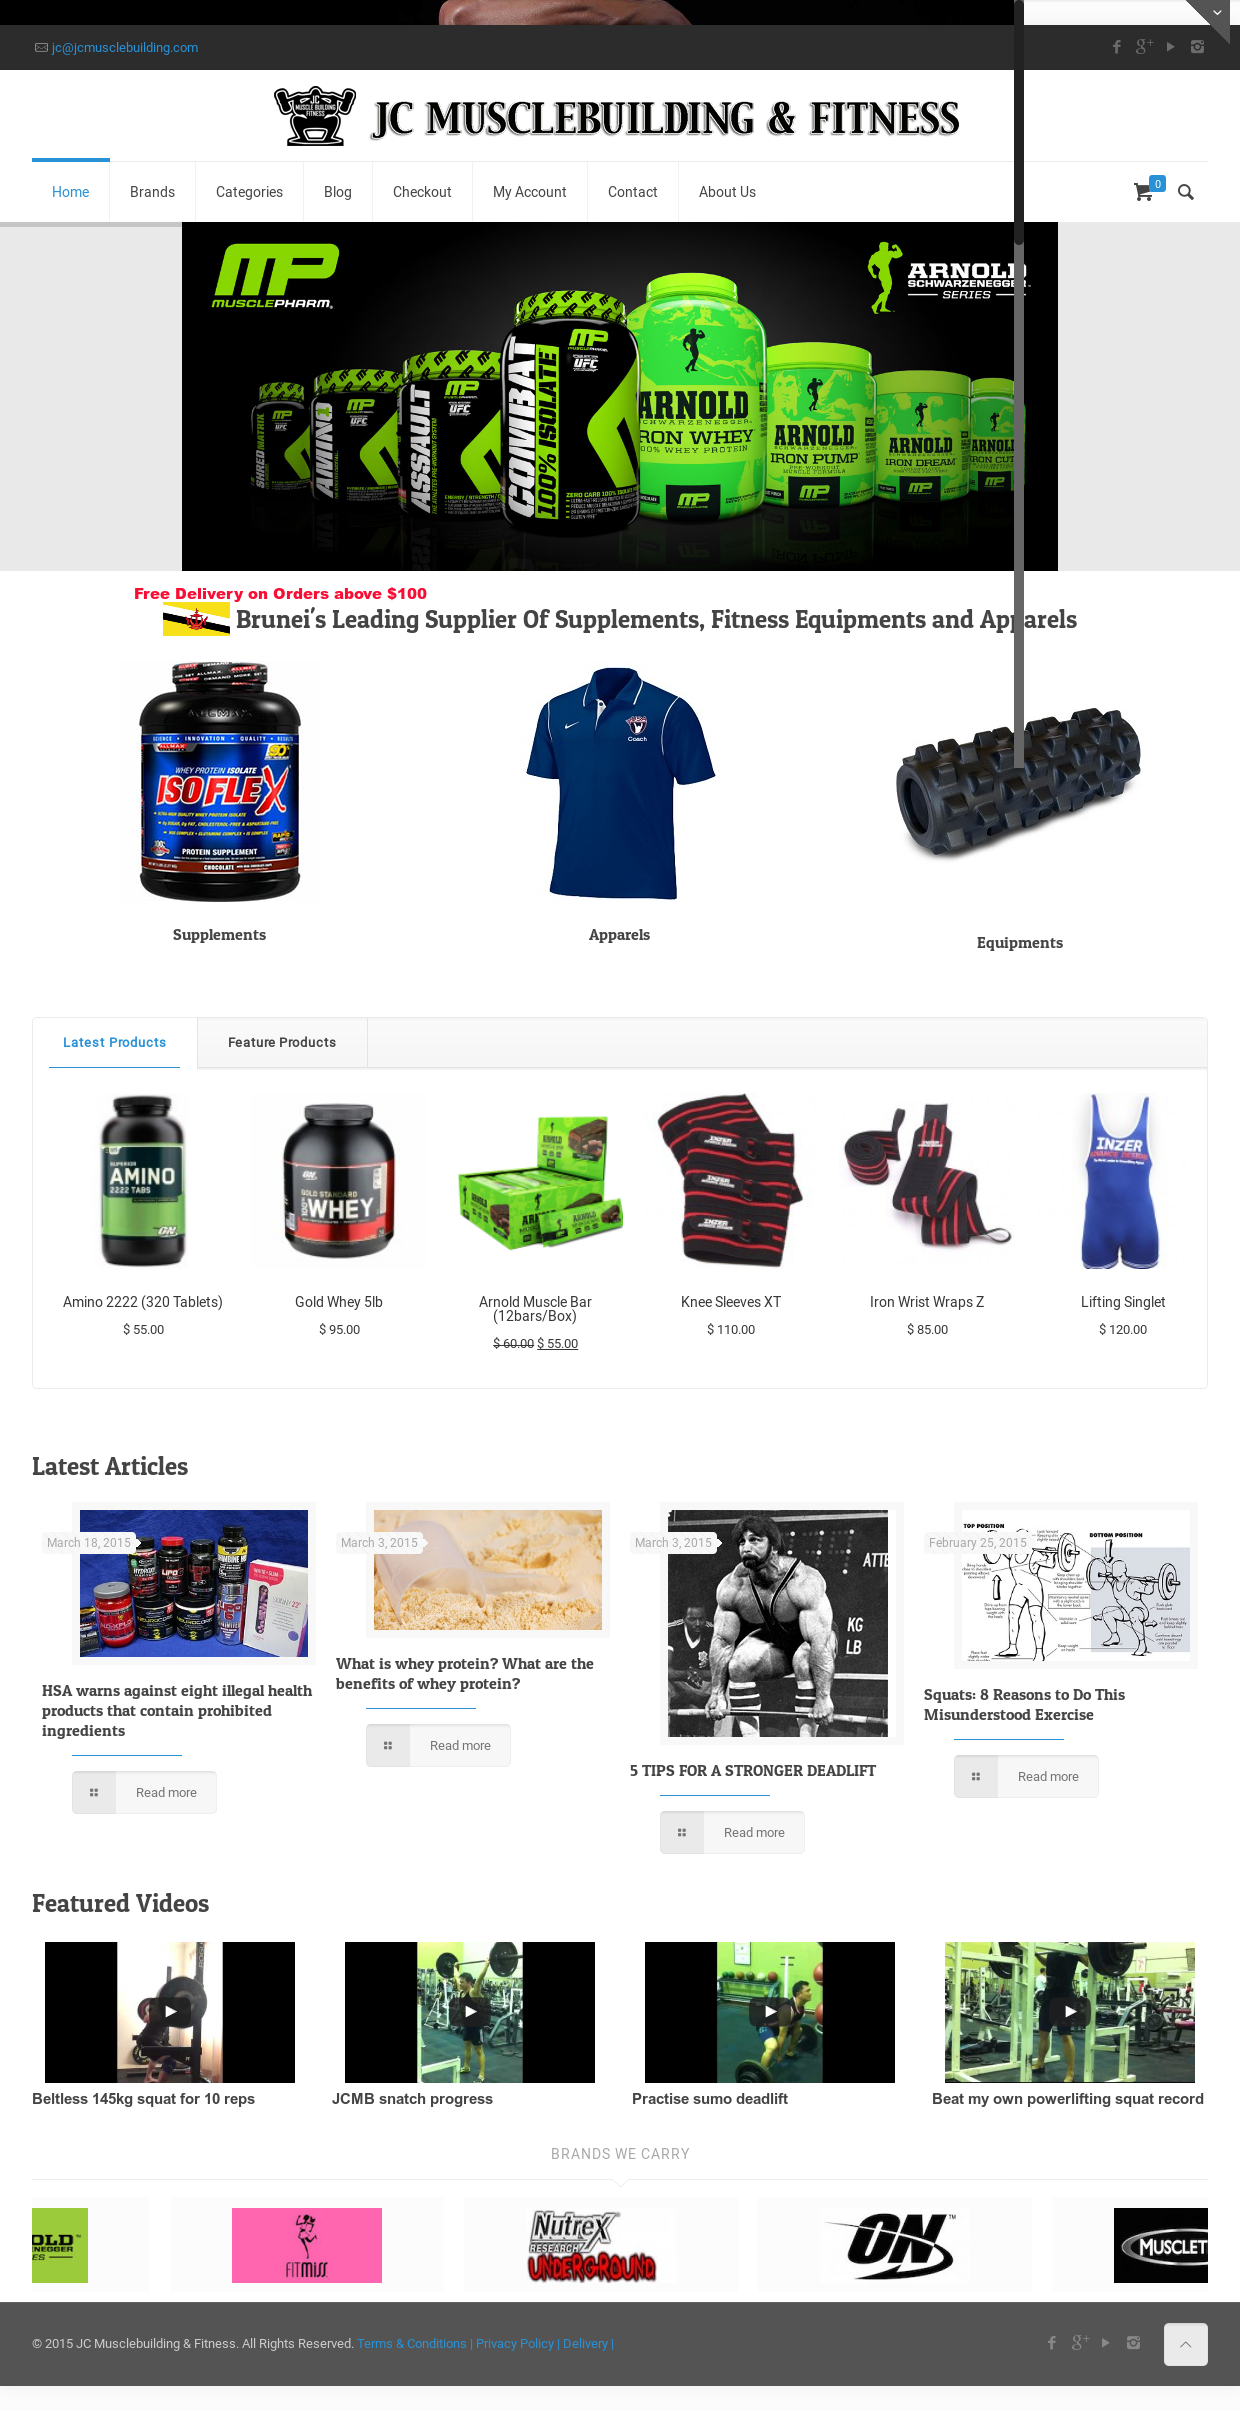 Jc Musclebuilding Fitness Competitors Revenue And Employees Amino On 2222 320 Tabs Owler Company Profile